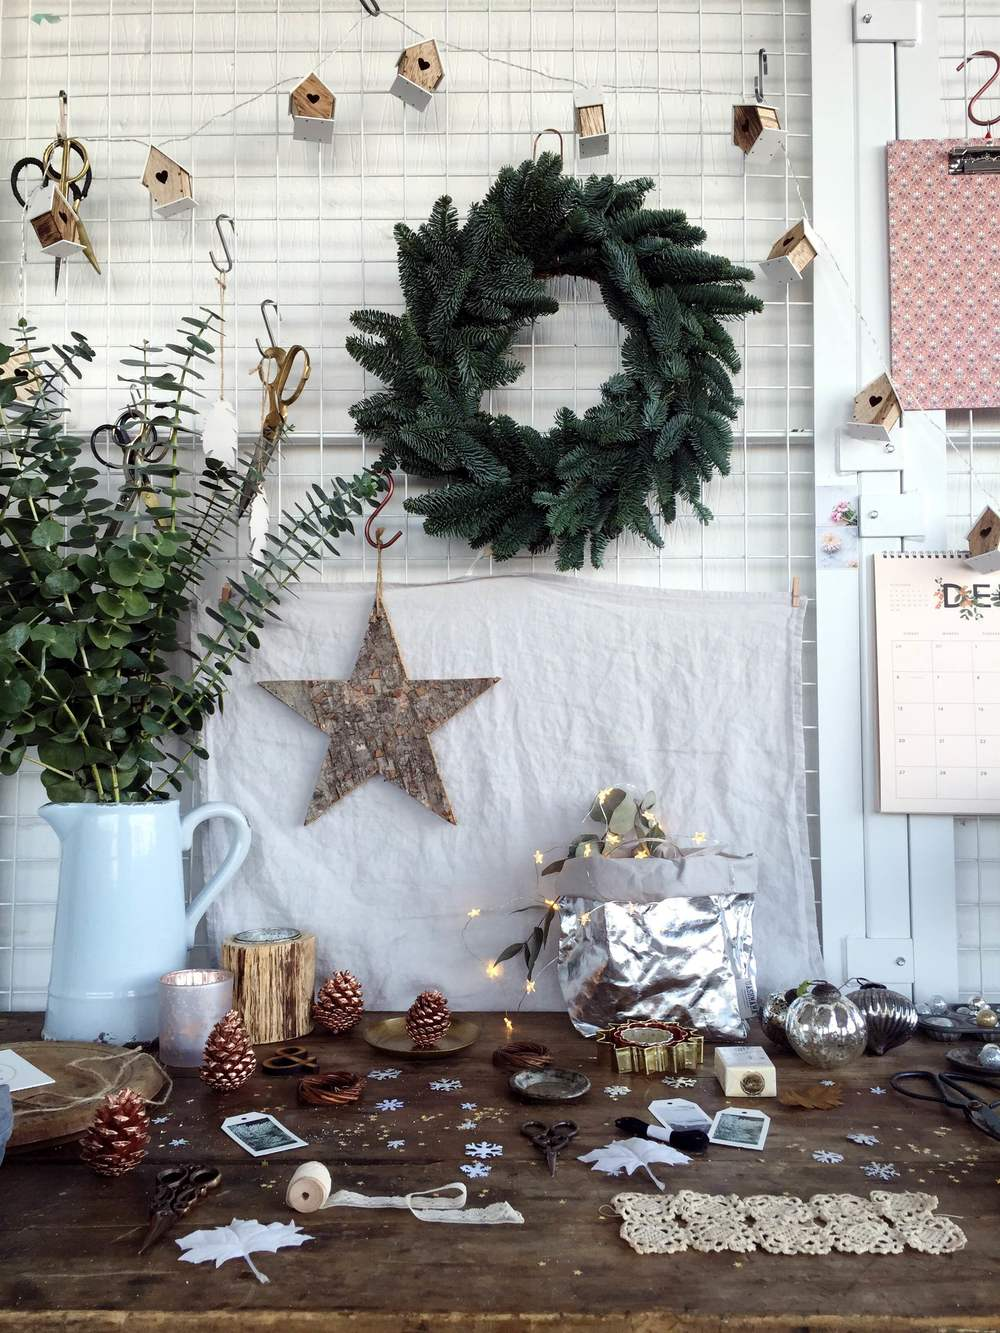 Capturing Christmas | Makelight